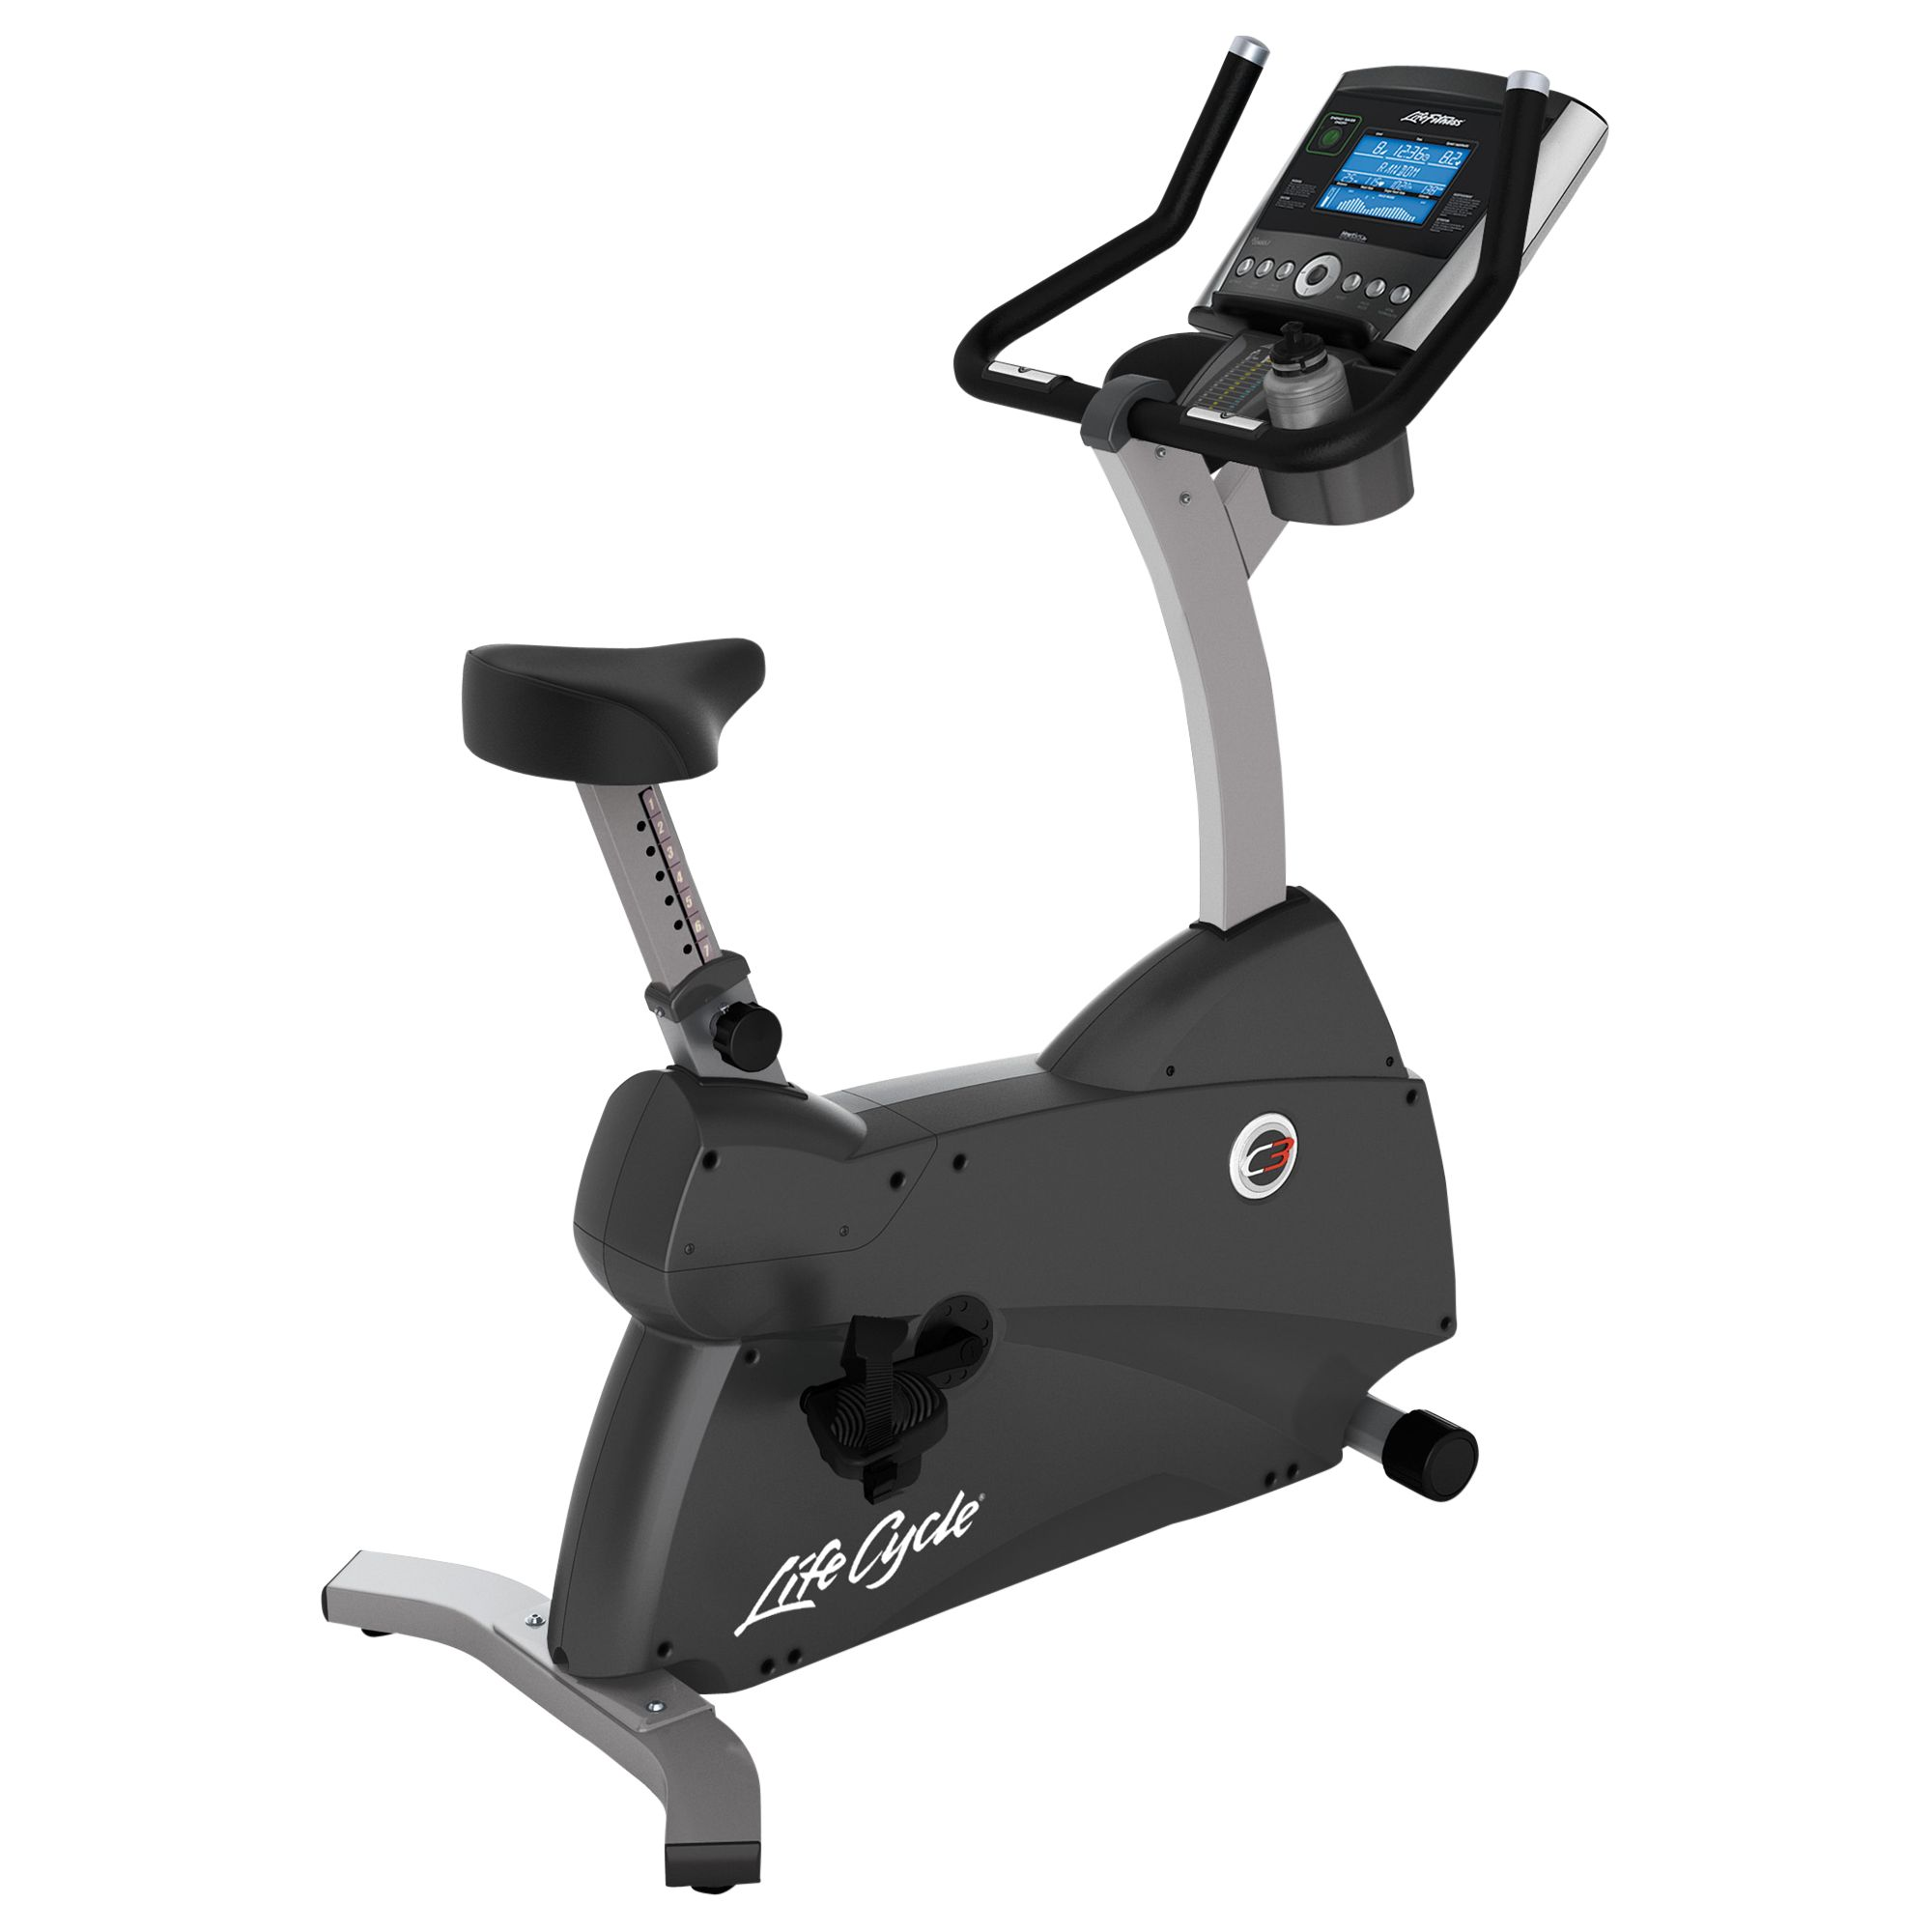 Life Fitness Life Fitness Lifecycle C3 Upright Exercise Bike with Go Console